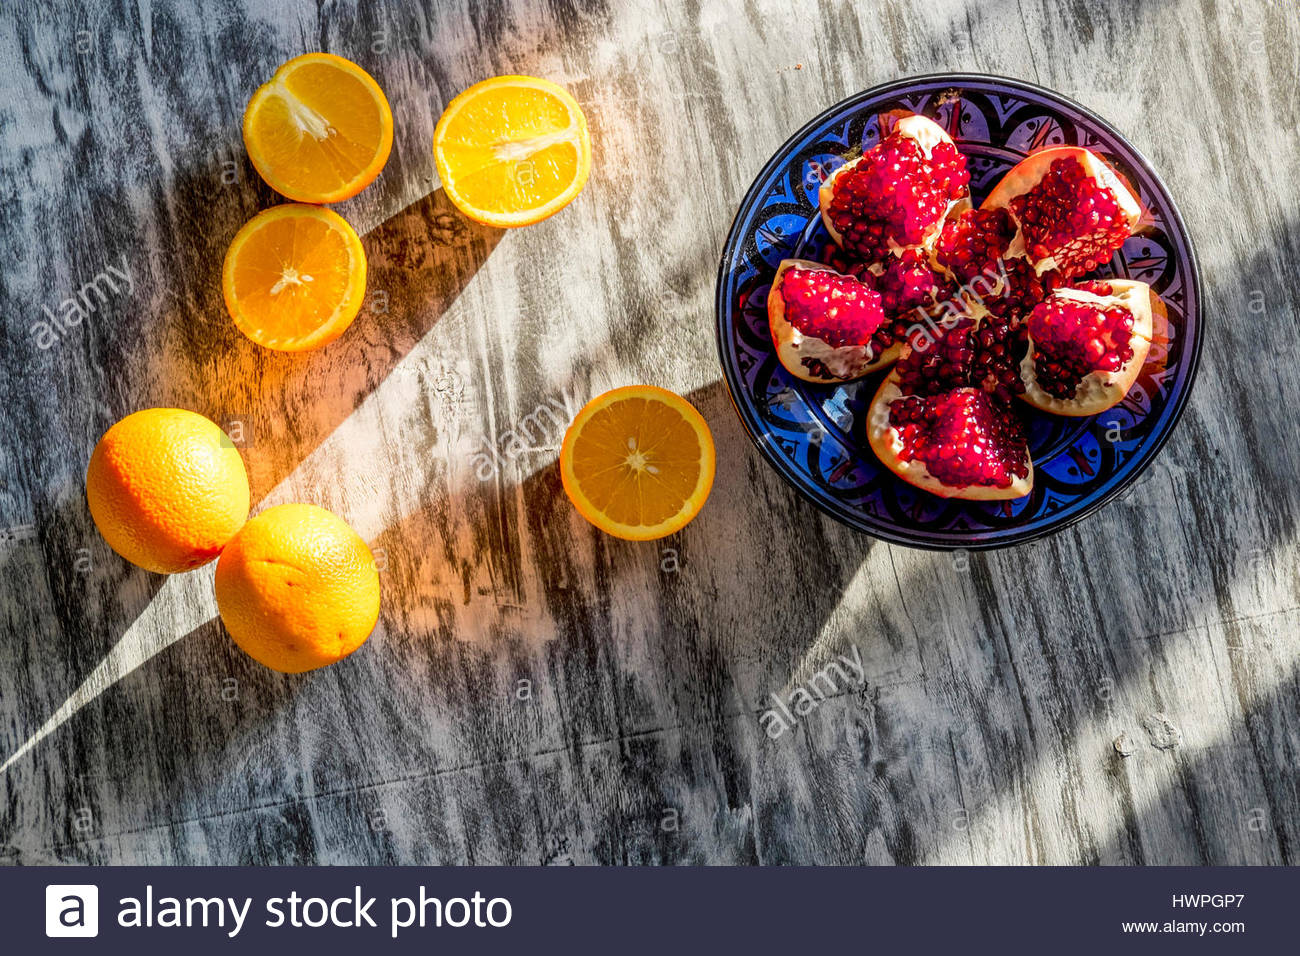 Overhead view of pomegranate and oranges on table - Stock Image